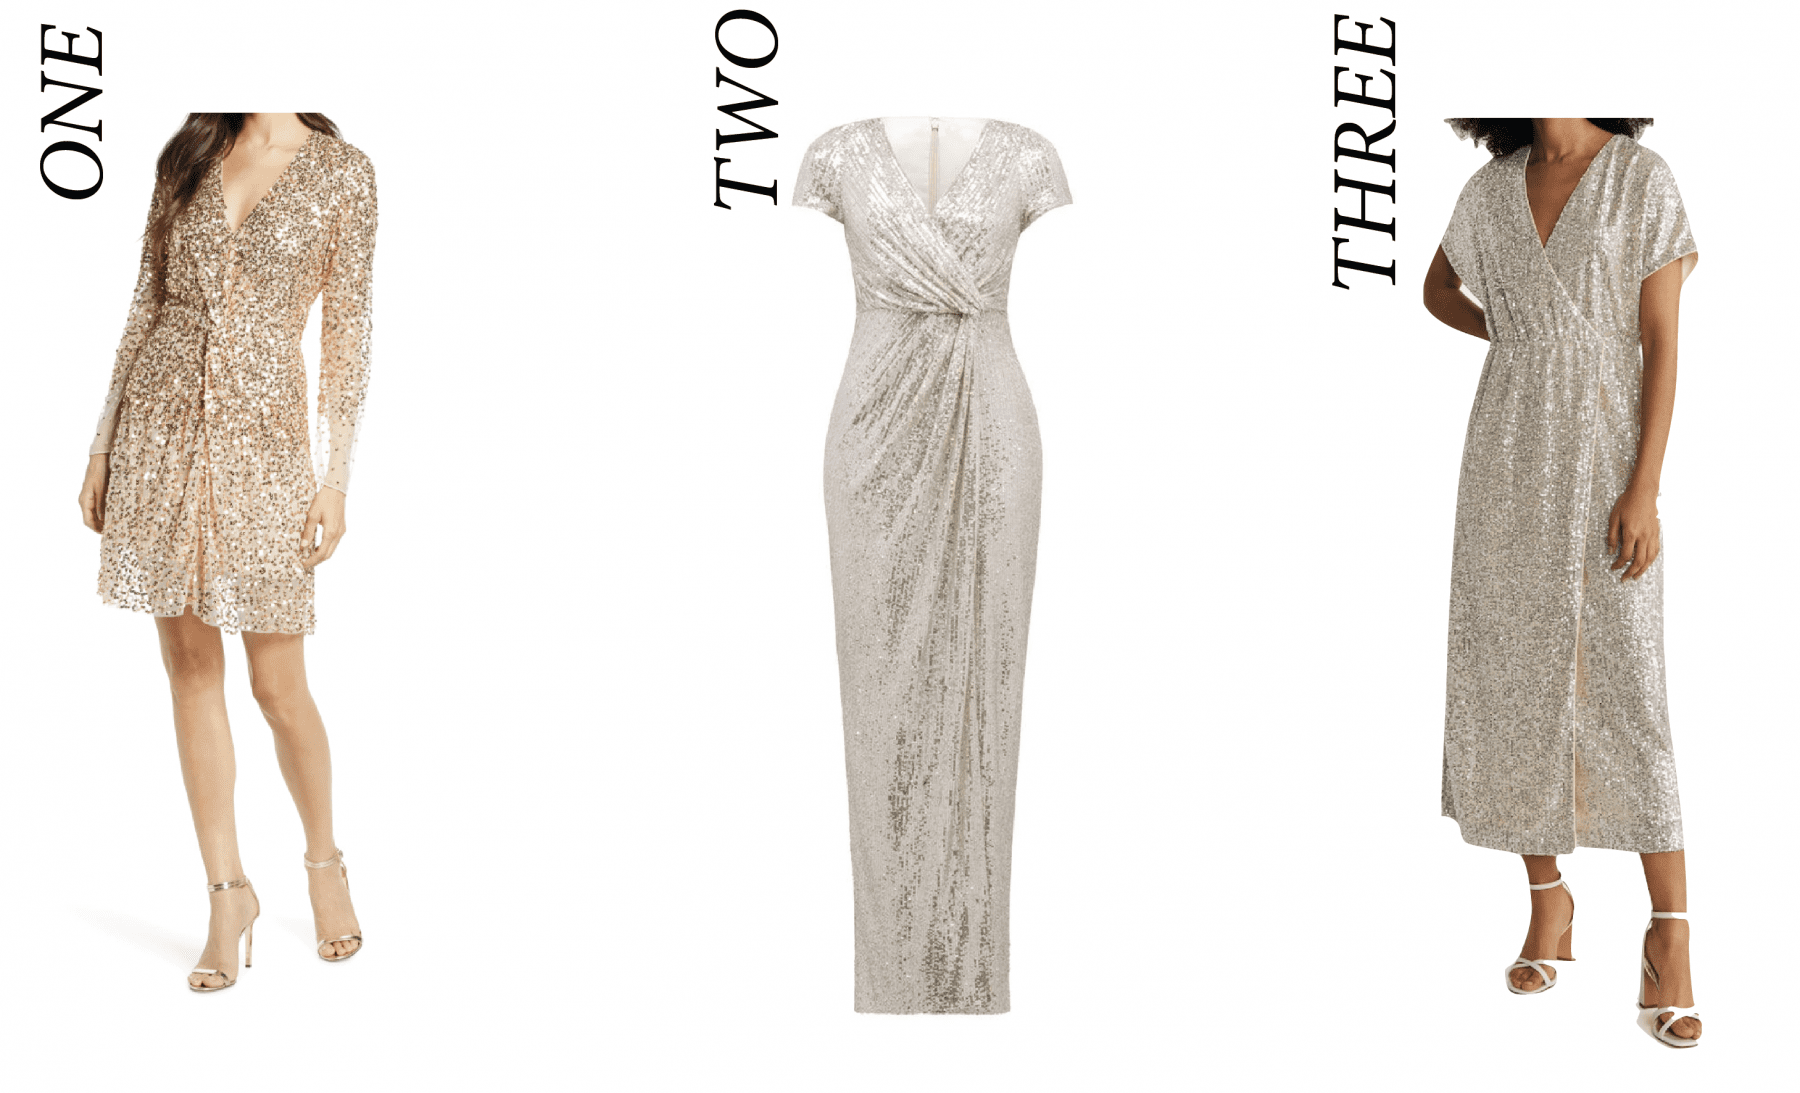 What to wear to a holiday party